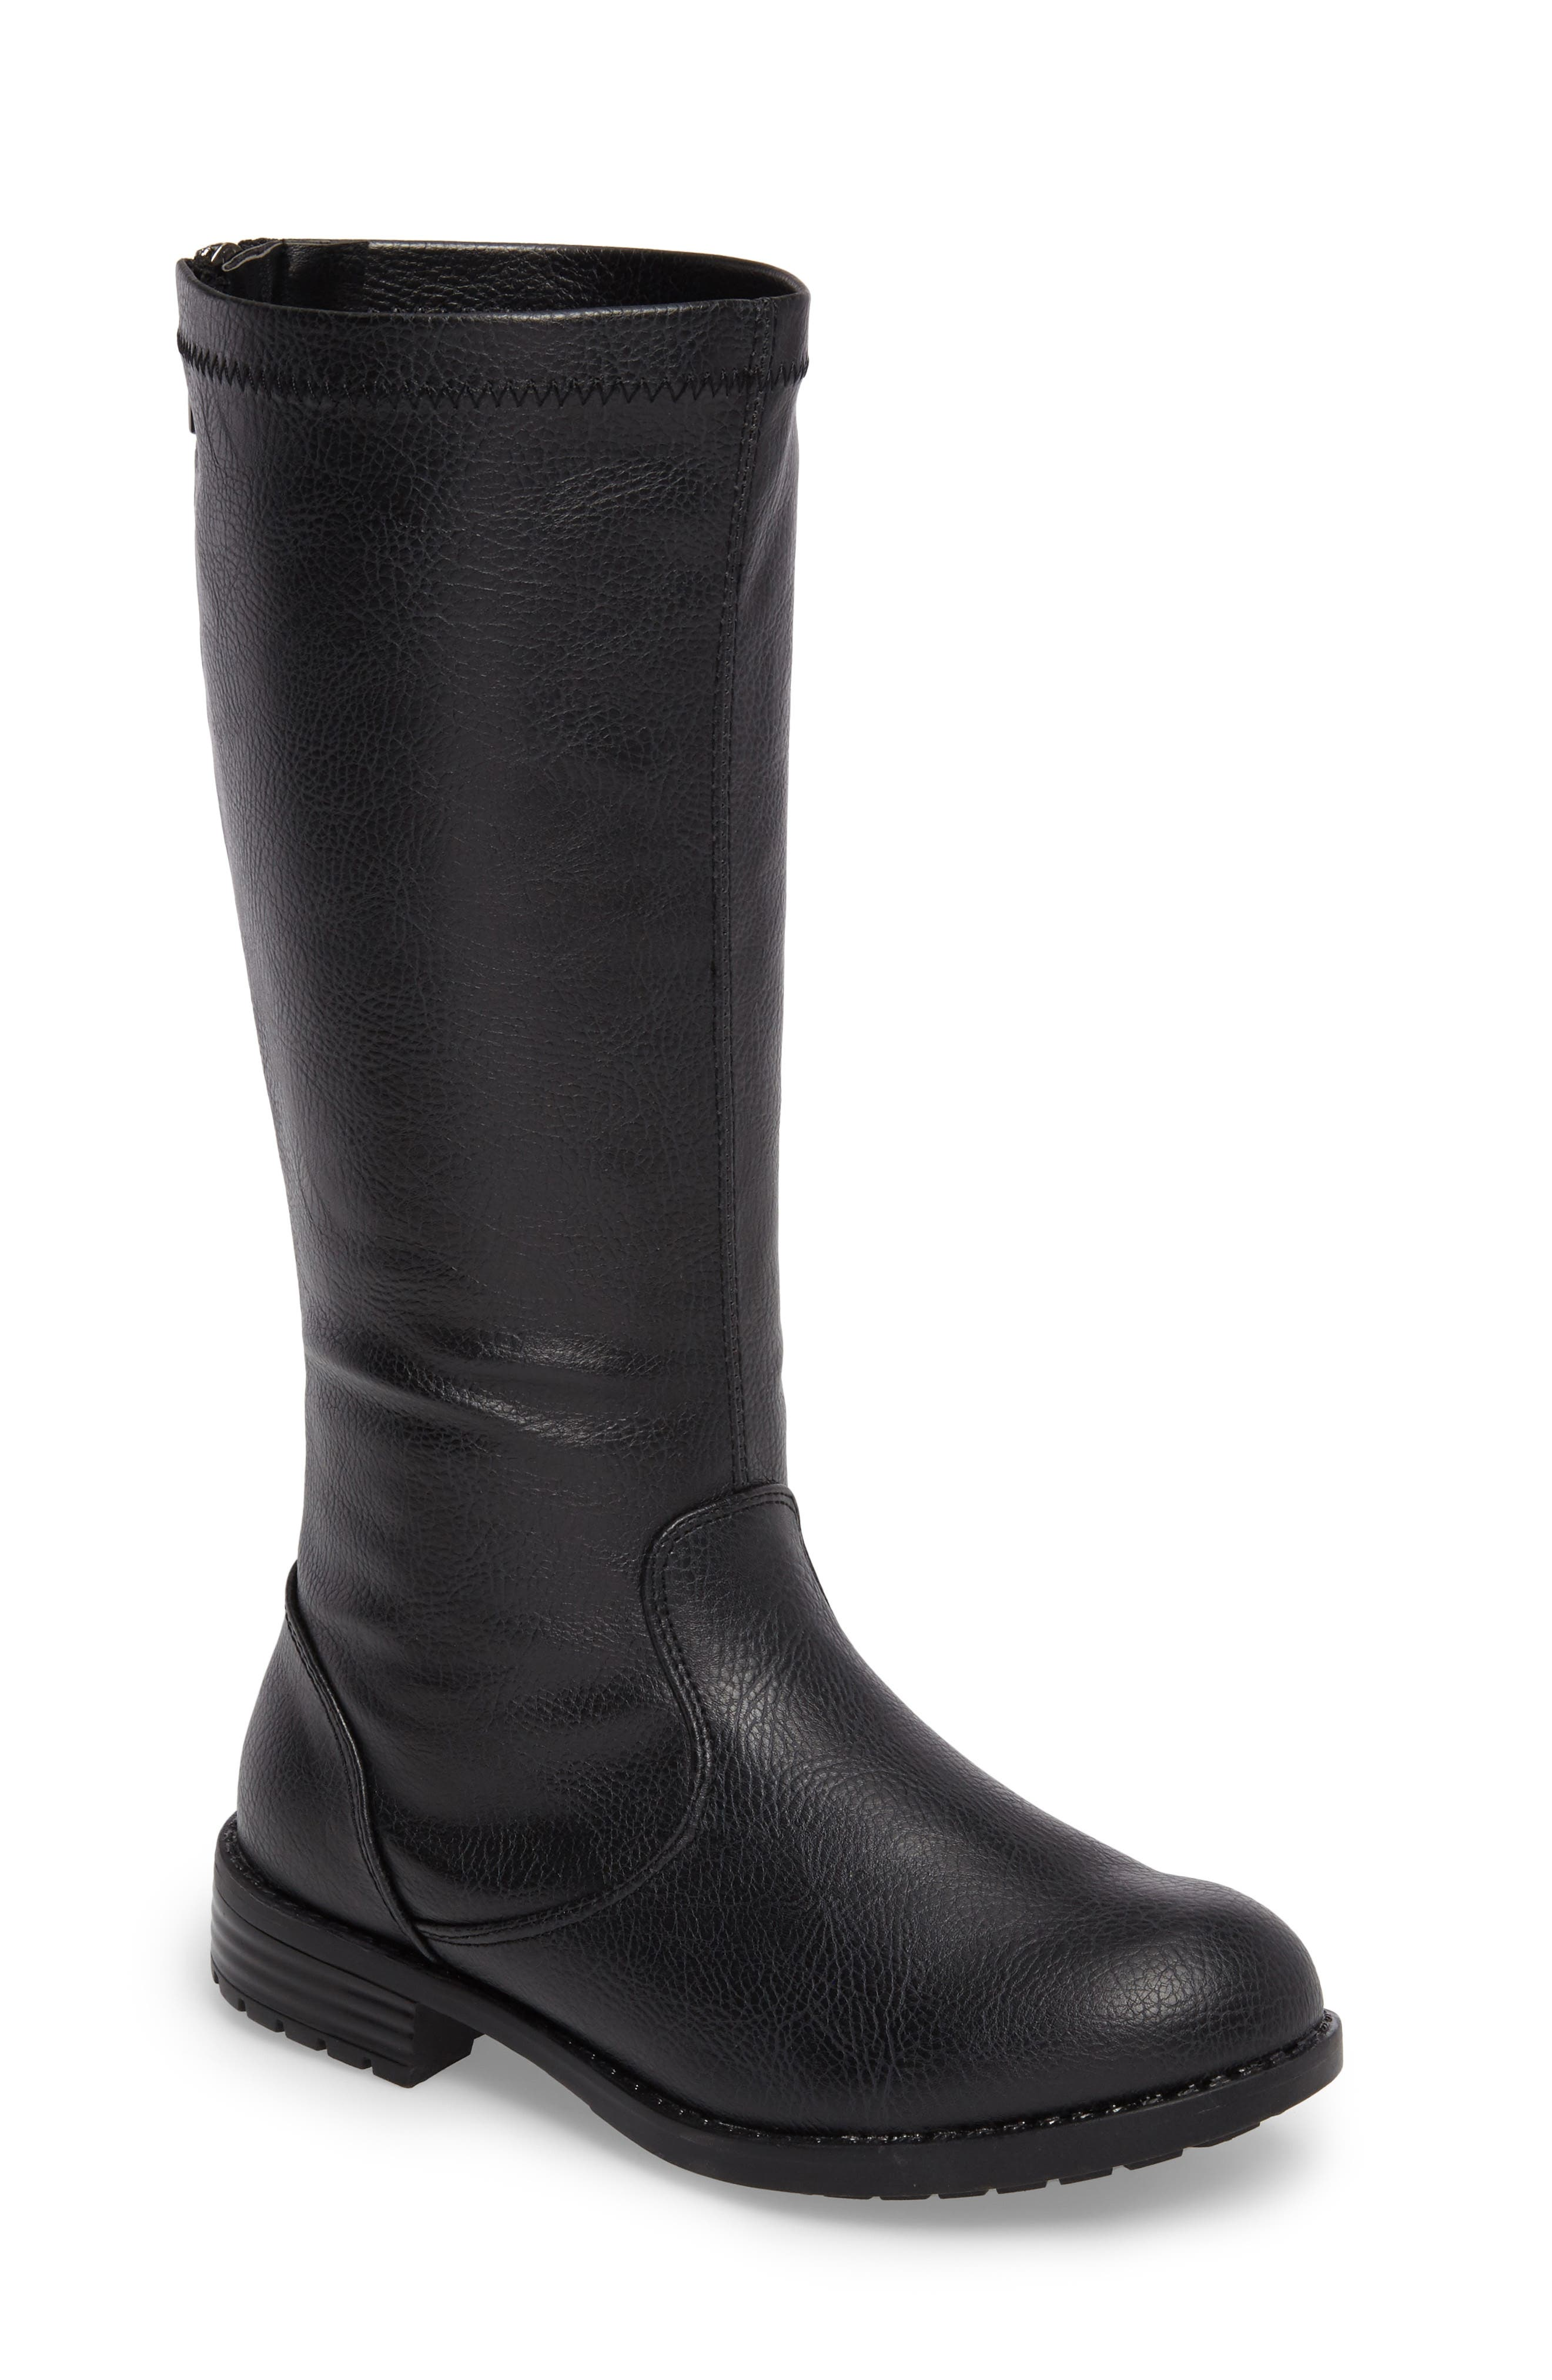 Kenneth Cole New York Autumn Stretch Boot (Walker, Toddler, Little Kid & Big Kid)